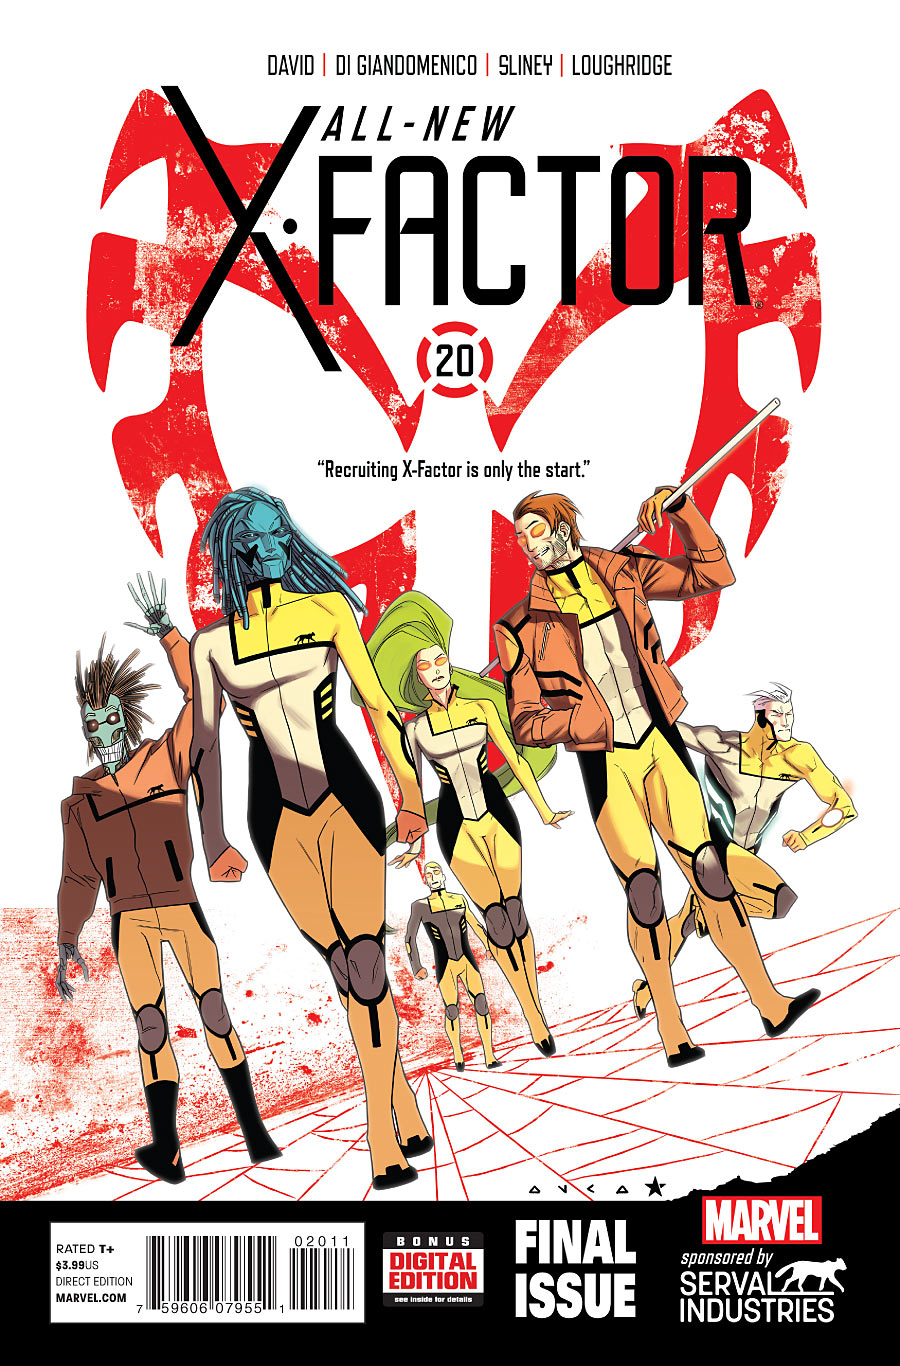 All-New X-Factor #20